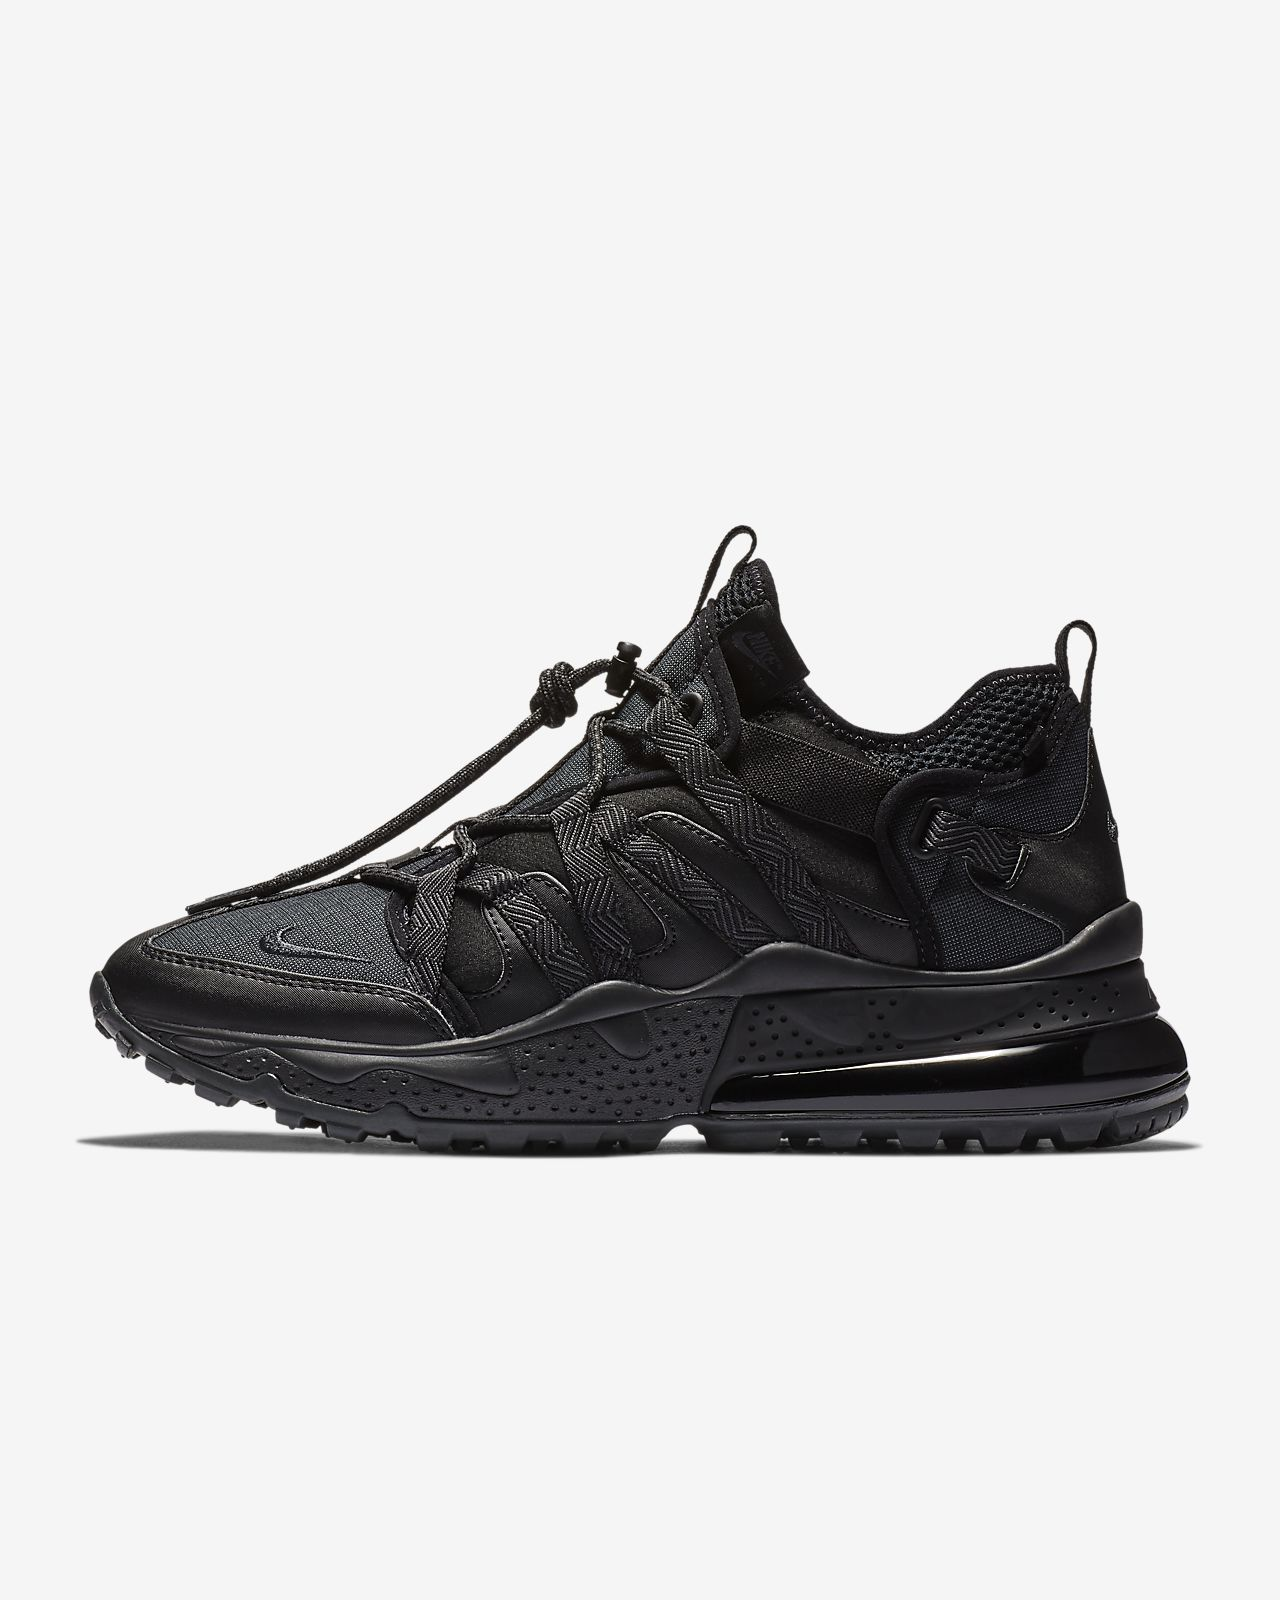 meet 77f26 4c51b ... Nike Air Max 270 Bowfin Men s Shoe